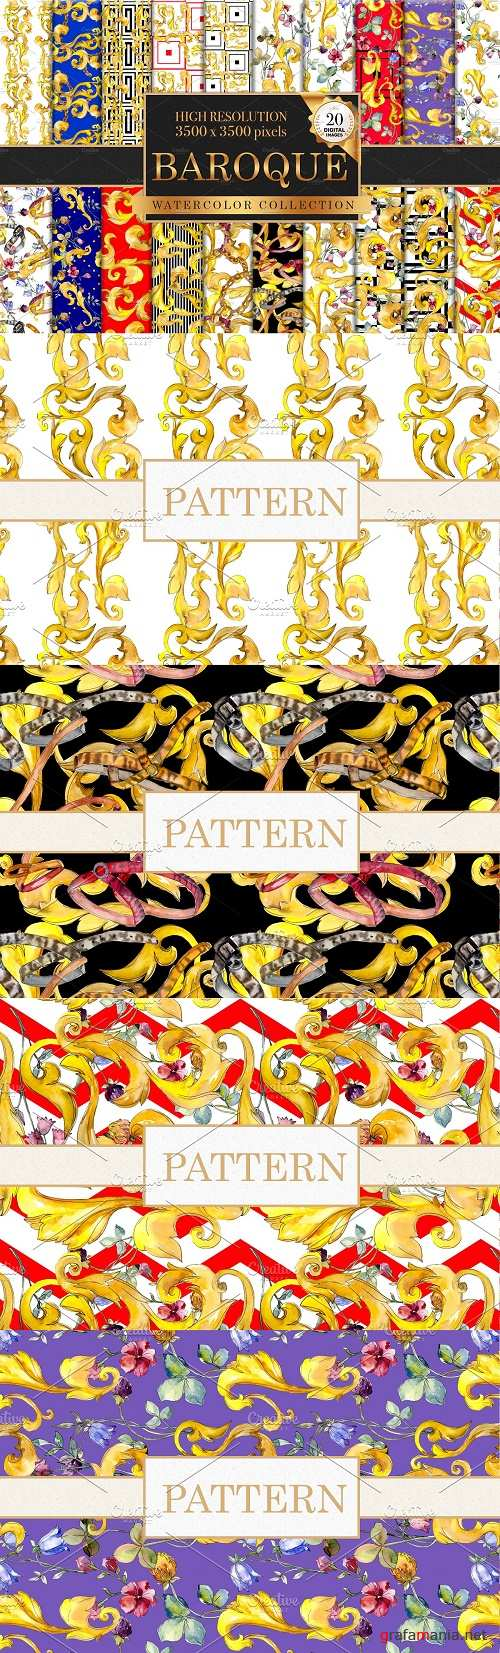 Patterns watercolor png - 3840774